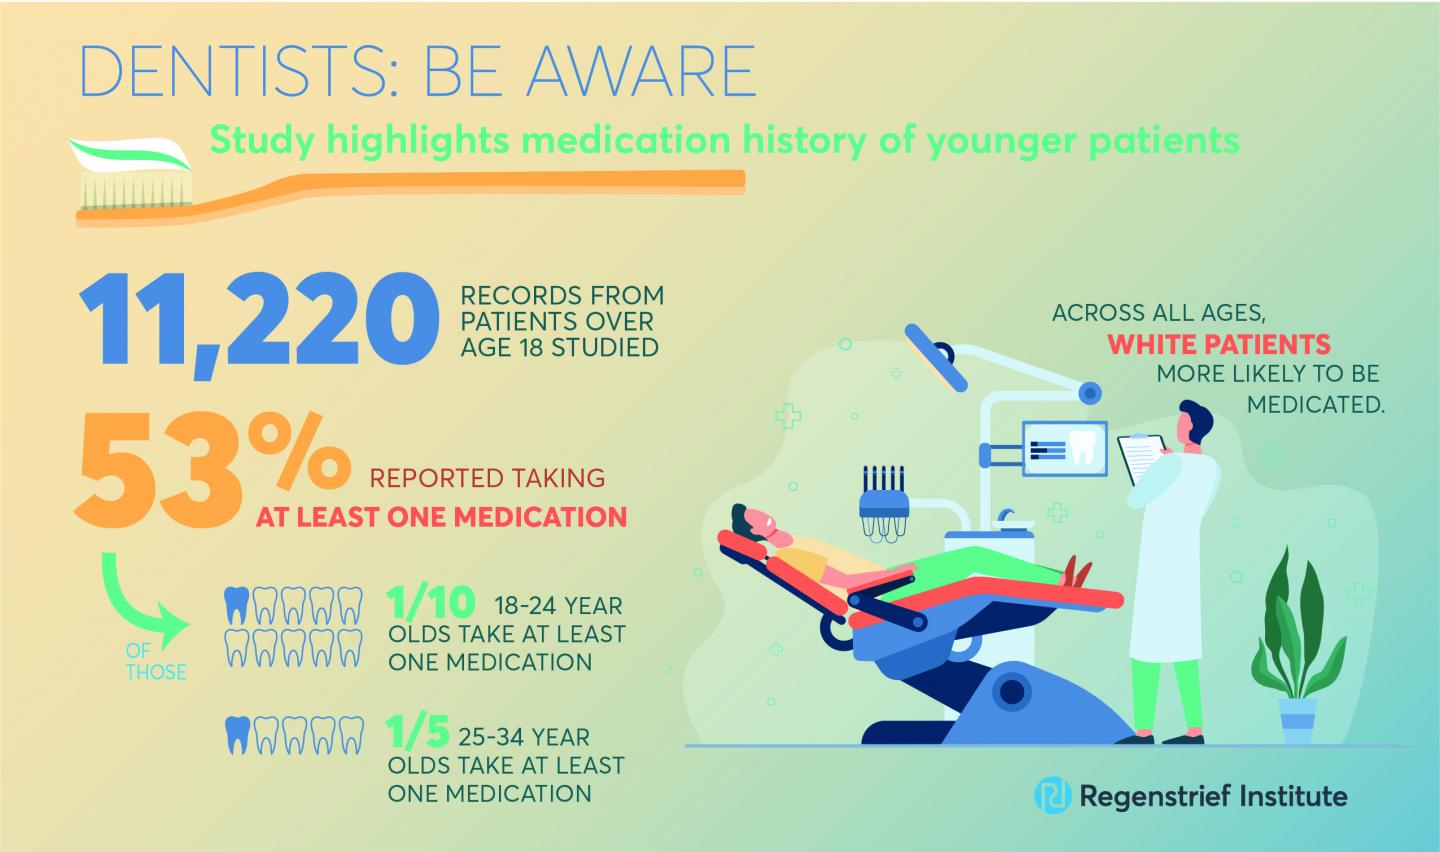 Dentists Need to Be Aware of Medication History even in Younger Adult Patients